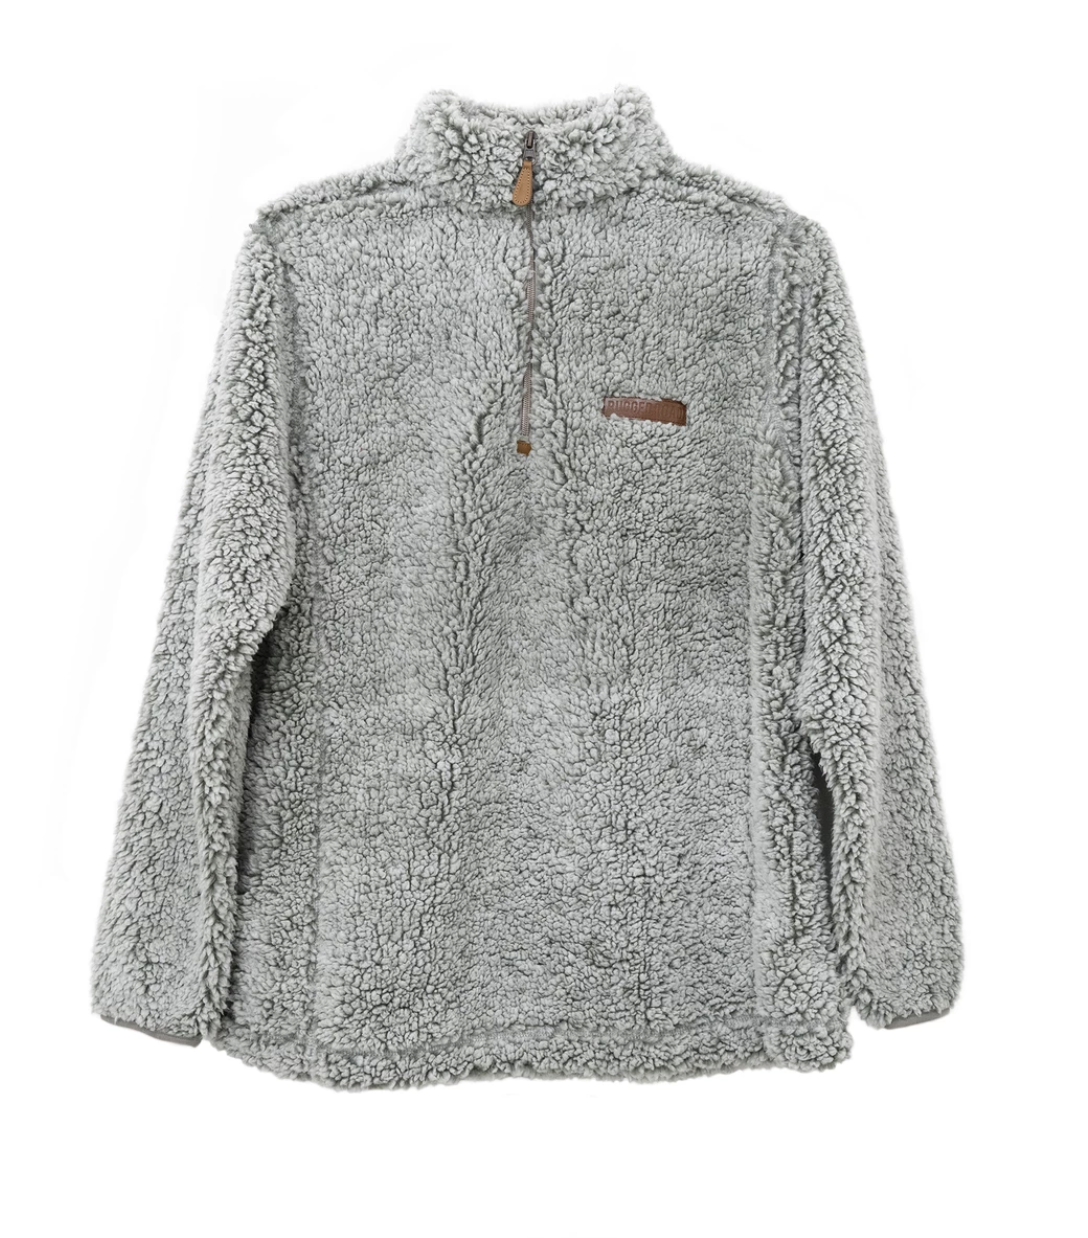 Rugged Road Pullover - White Smoke